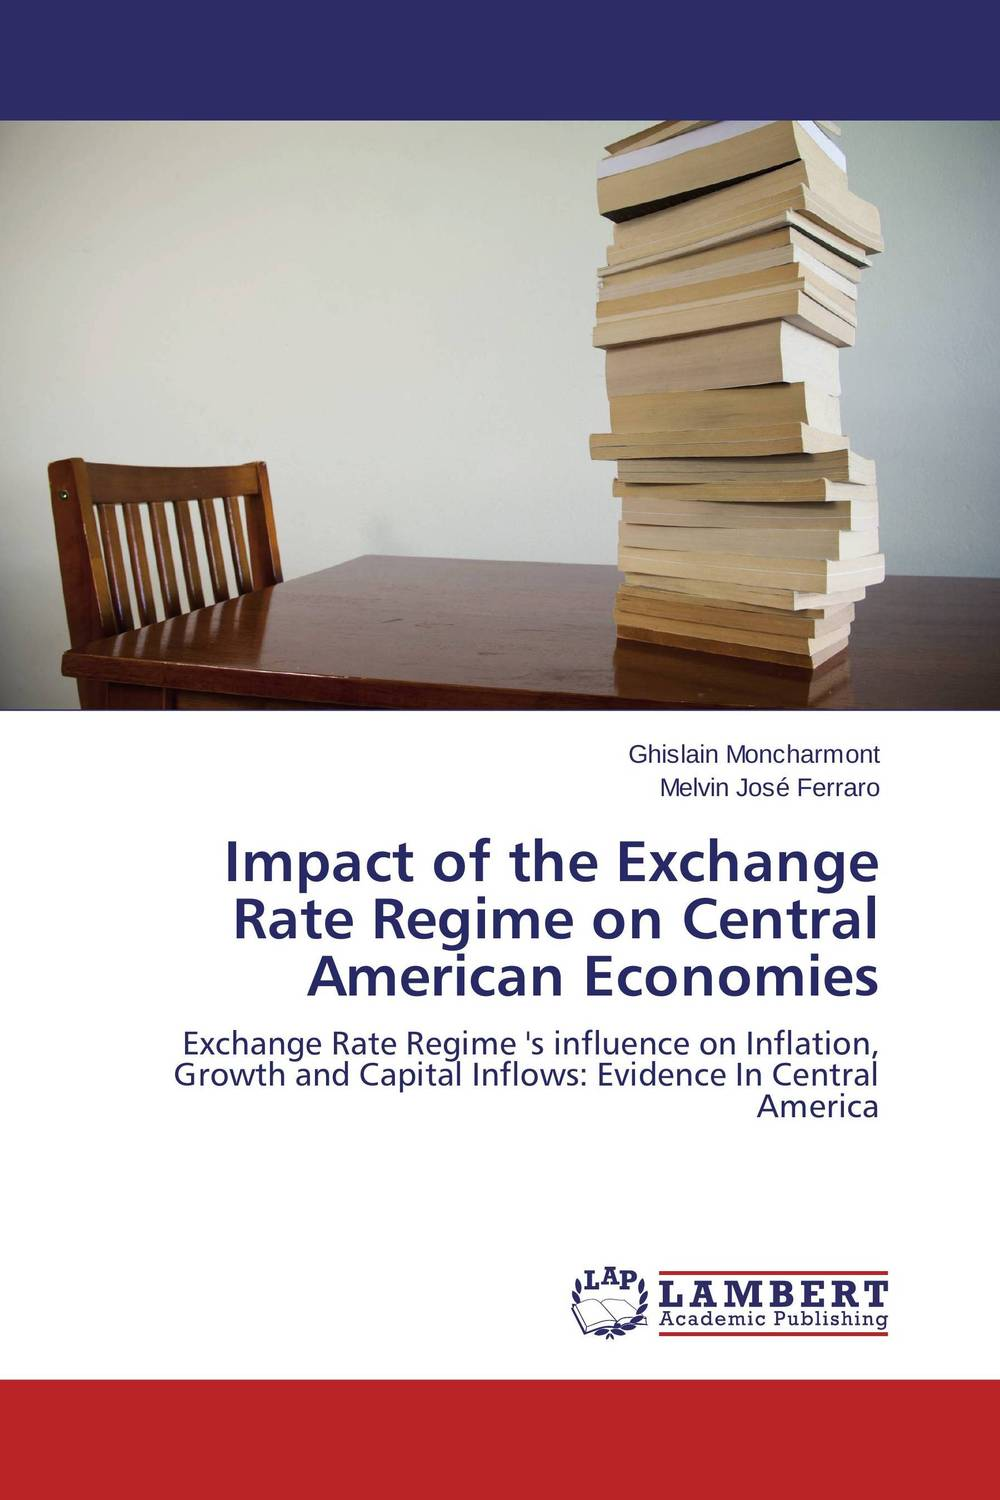 Impact of the Exchange Rate Regime on Central American Economies